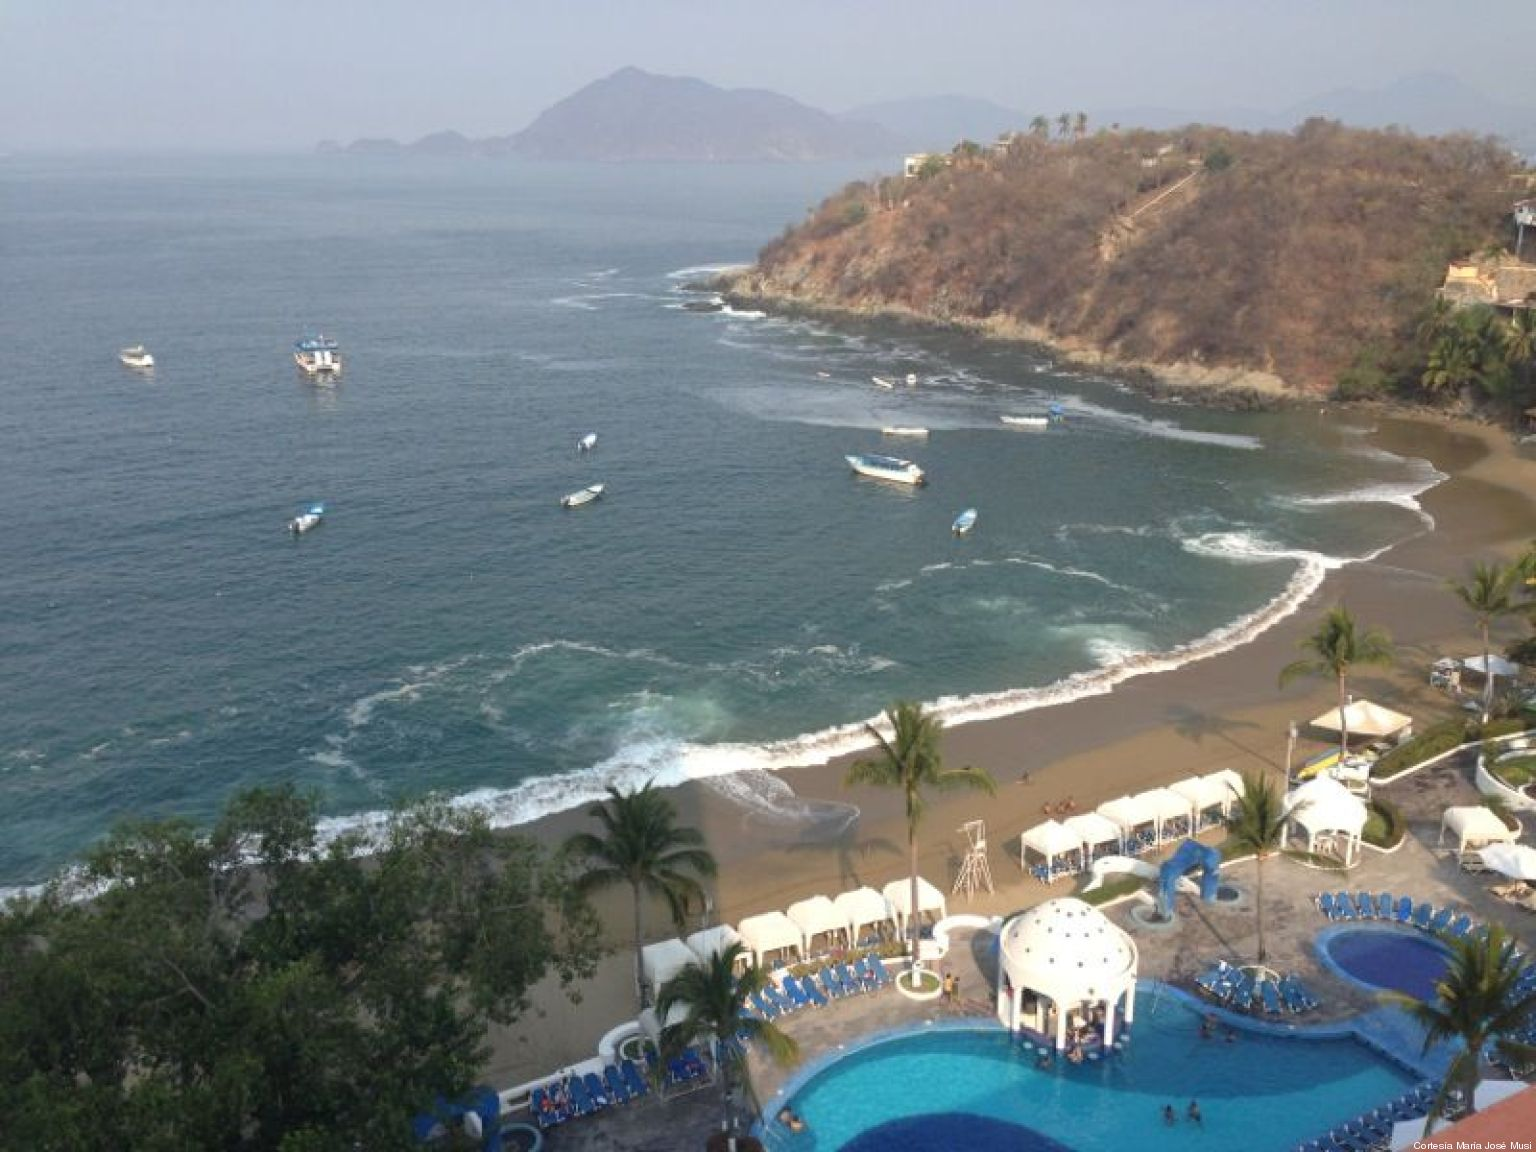 manzanillo girls Developers have discovered manzanillo is ready for some exciting new modern full service condominium projects and have properties for sale manzanillo real estate.